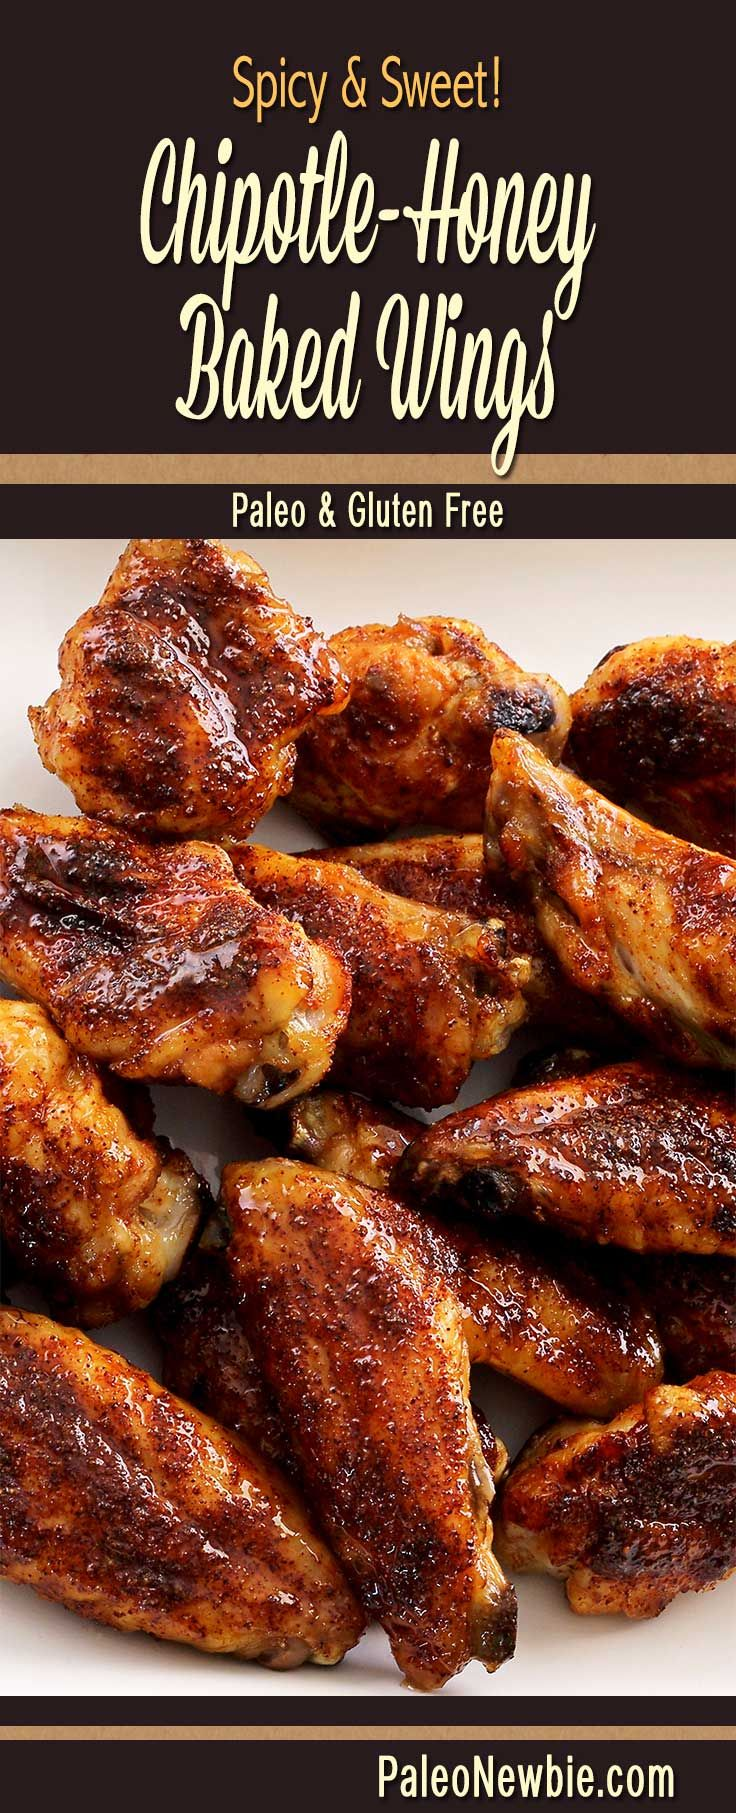 Easy and awesome wings recipe for football Sunday! Mix up my special chipotle dry rub and brush with honey. Bake and dig in! #paleo #glutenfree